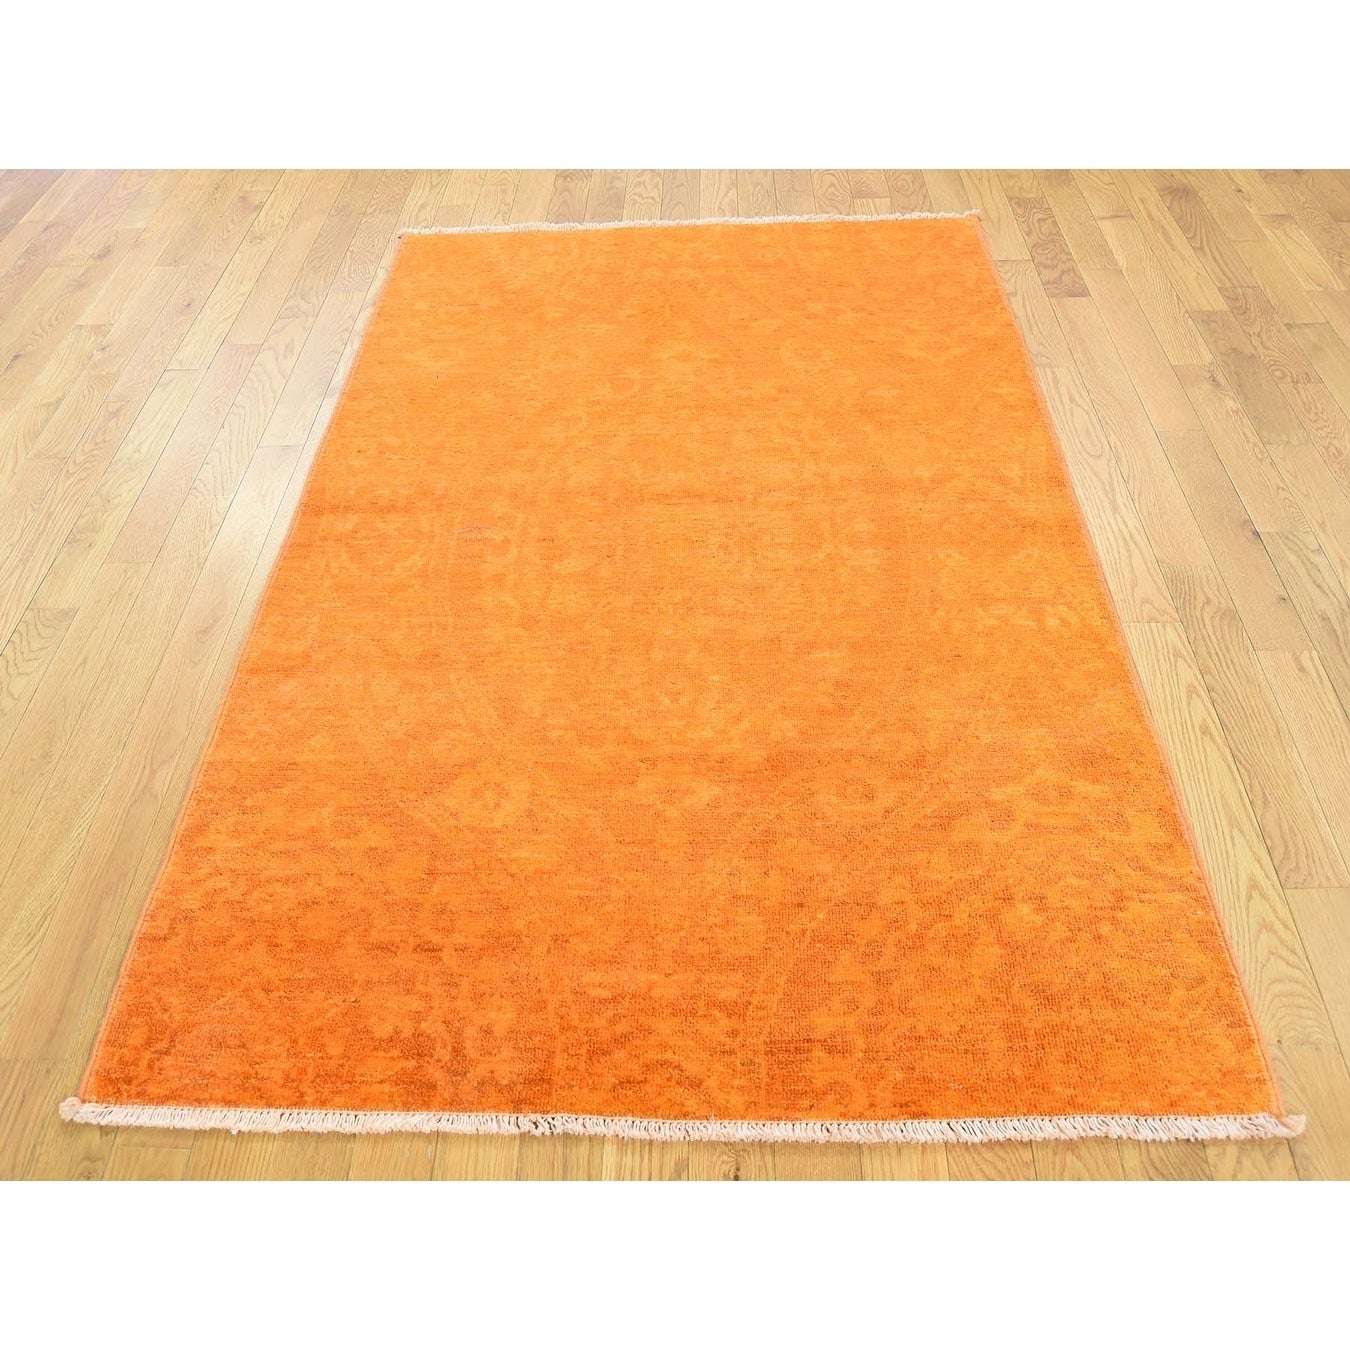 Hand Knotted Orange Oushak And Peshawar with Wool Oriental Rug - 4 x 63